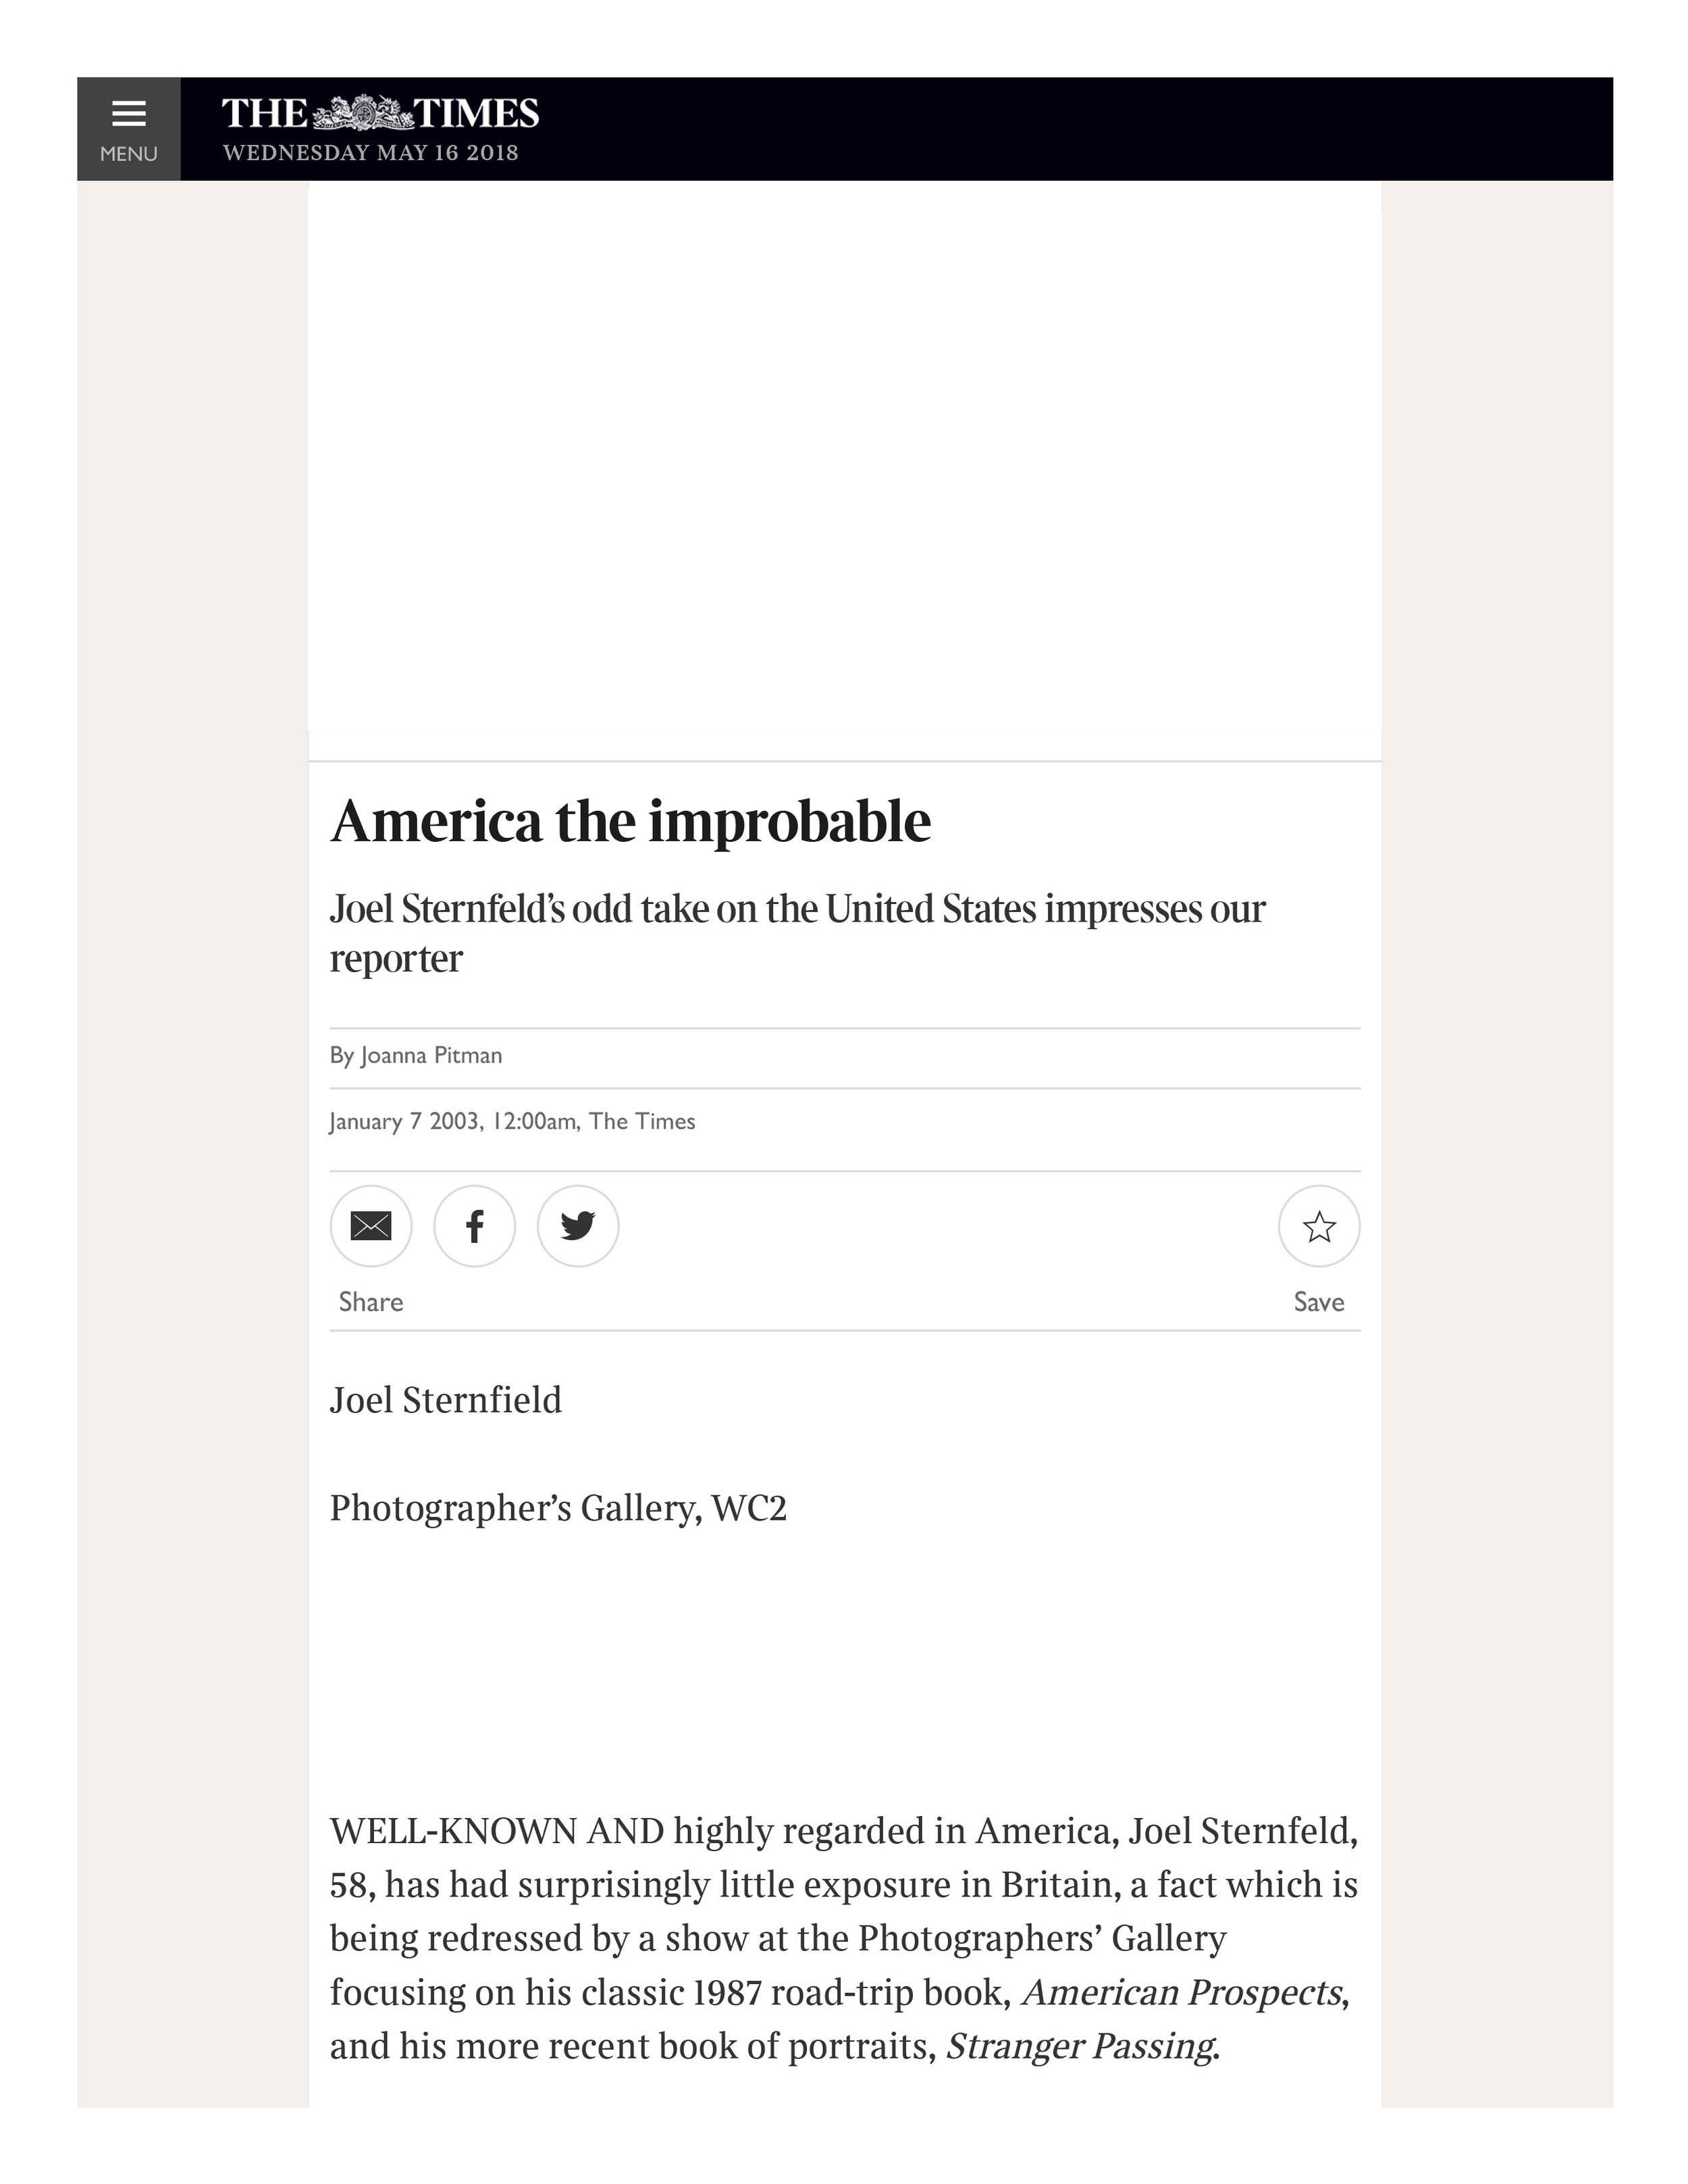 America the improbable | The Times